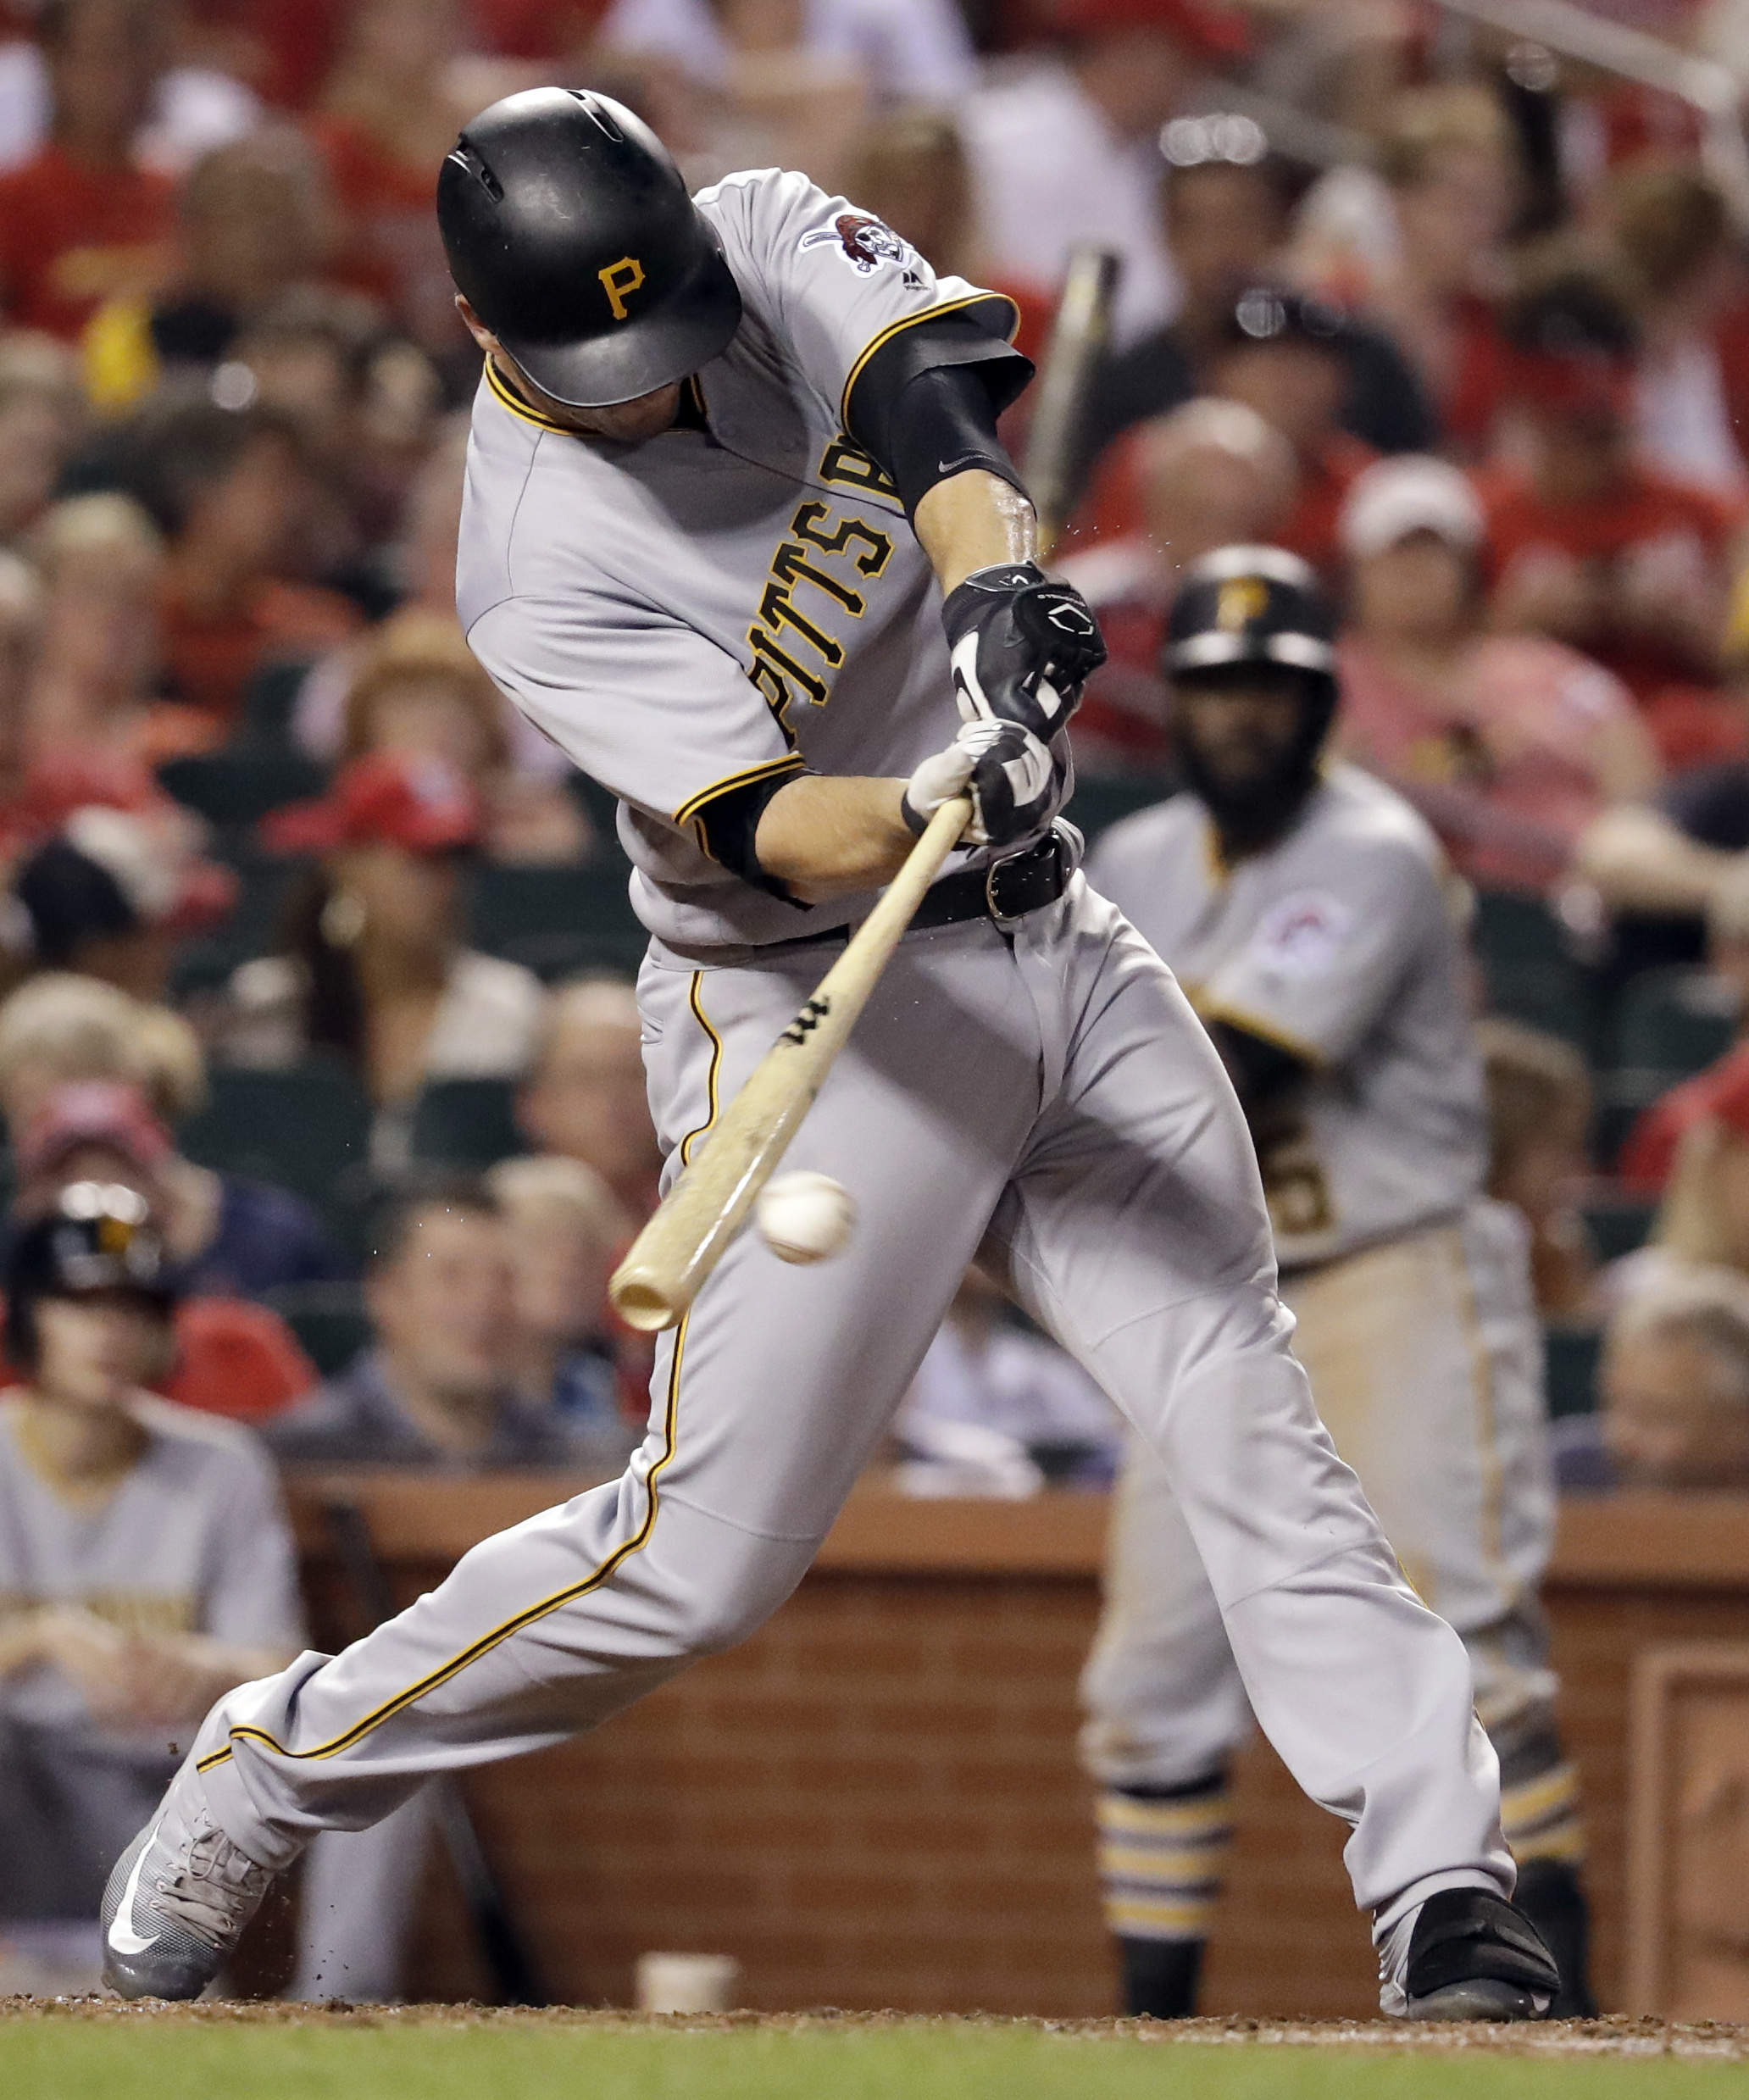 Pittsburgh Pirates' David Freese hits an RBI single during the sixth inning of a baseball game against the St. Louis Cardinals on Tuesday, July 5, 2016, in St. Louis. (AP Photo/Jeff Roberson)